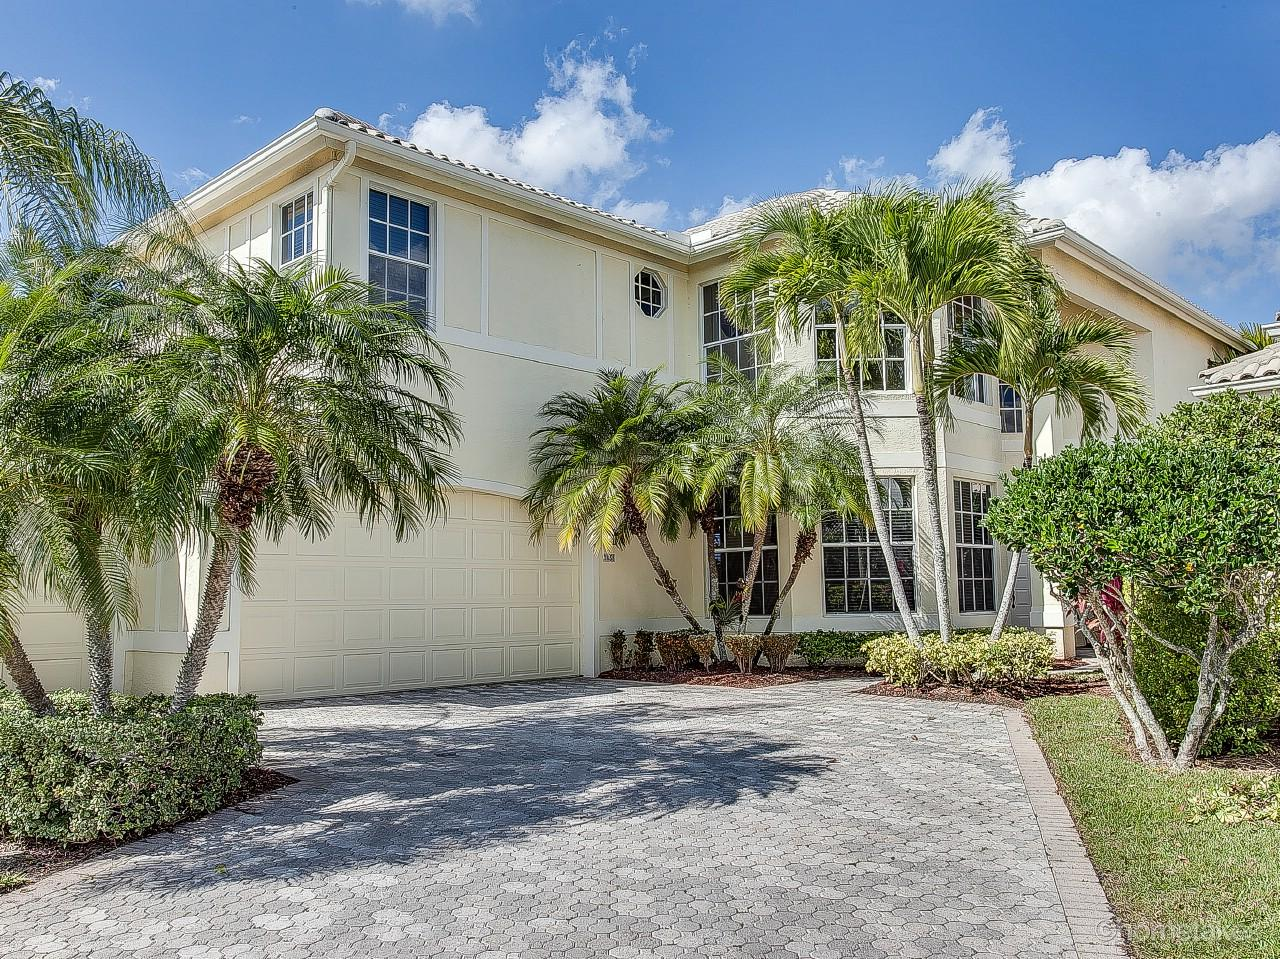 2458 Players Court, Wellington, Florida 33414, 4 Bedrooms Bedrooms, ,4.1 BathroomsBathrooms,Single Family,For Sale,Palm Beach polo,Players,RX-10514696